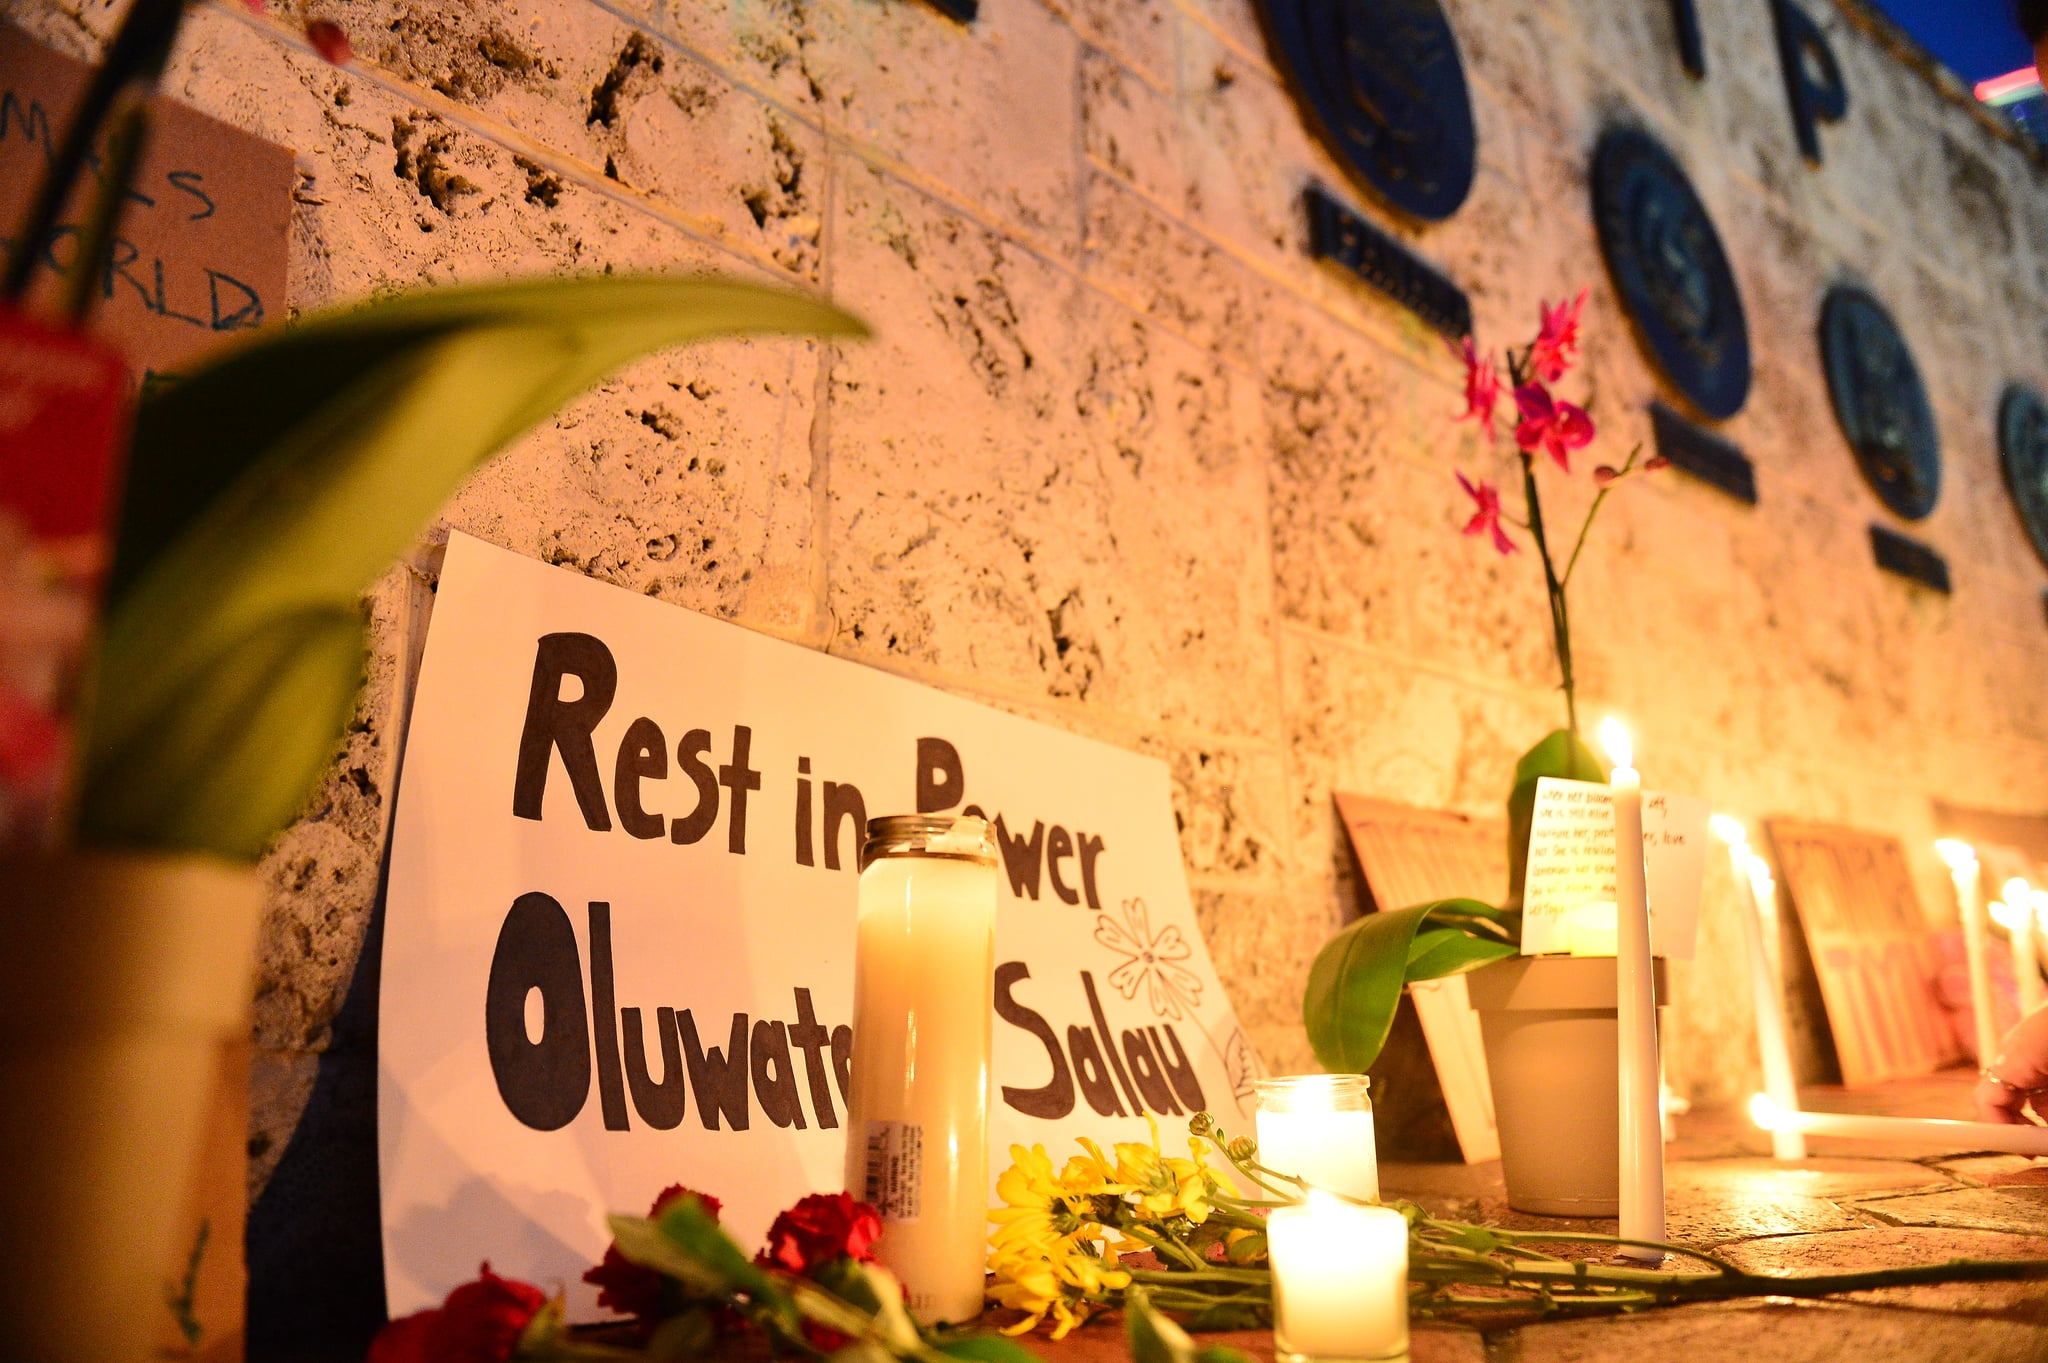 MIAMI, FL - JUNE 16: General view during during a candlelight vigil for 19-year-old activist Oluwatoyin